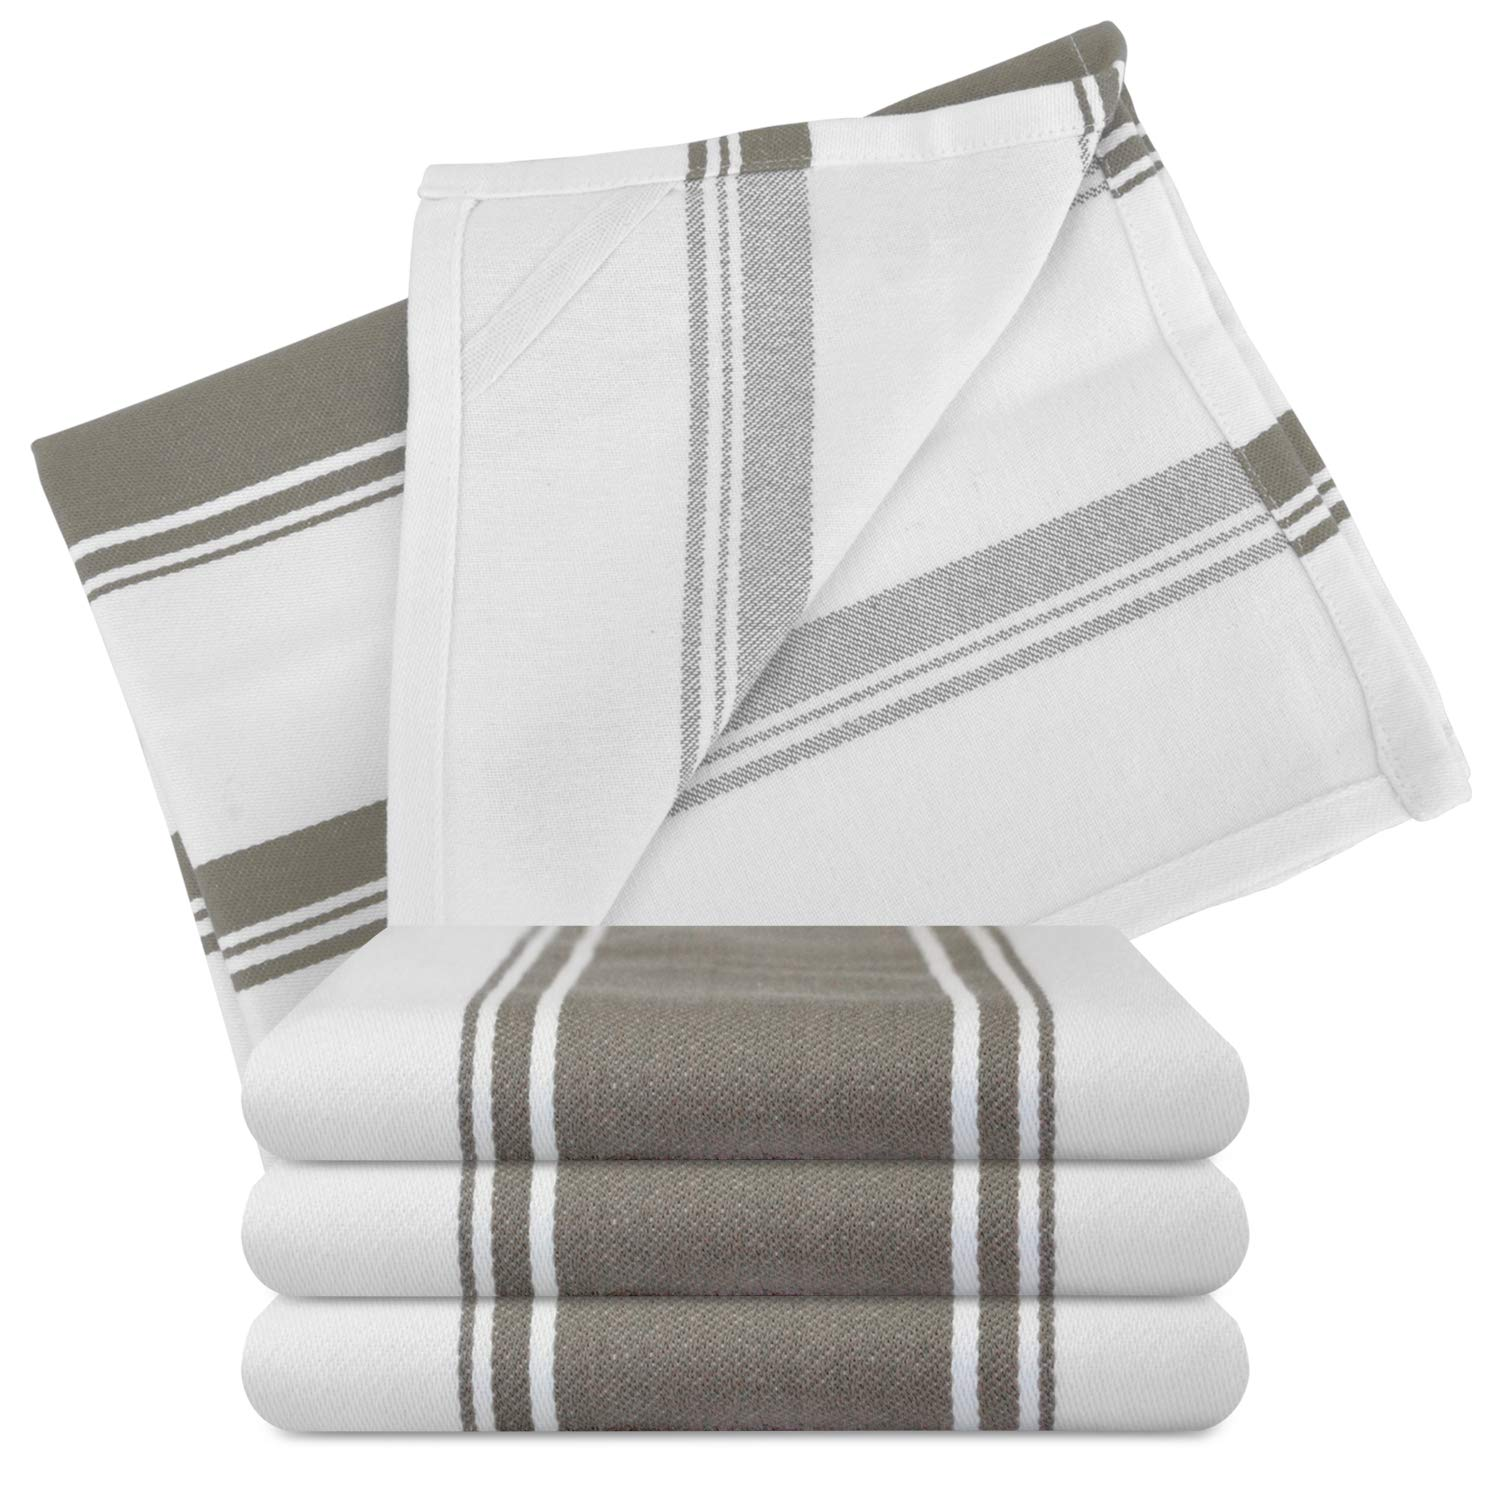 Kitchen Dish Towels - Set of 4 Cotton Tea Towels 20 x 28 inch - Best Dish Cloths for Hand Towels or Embroidery in Vibrant Colors - Greige